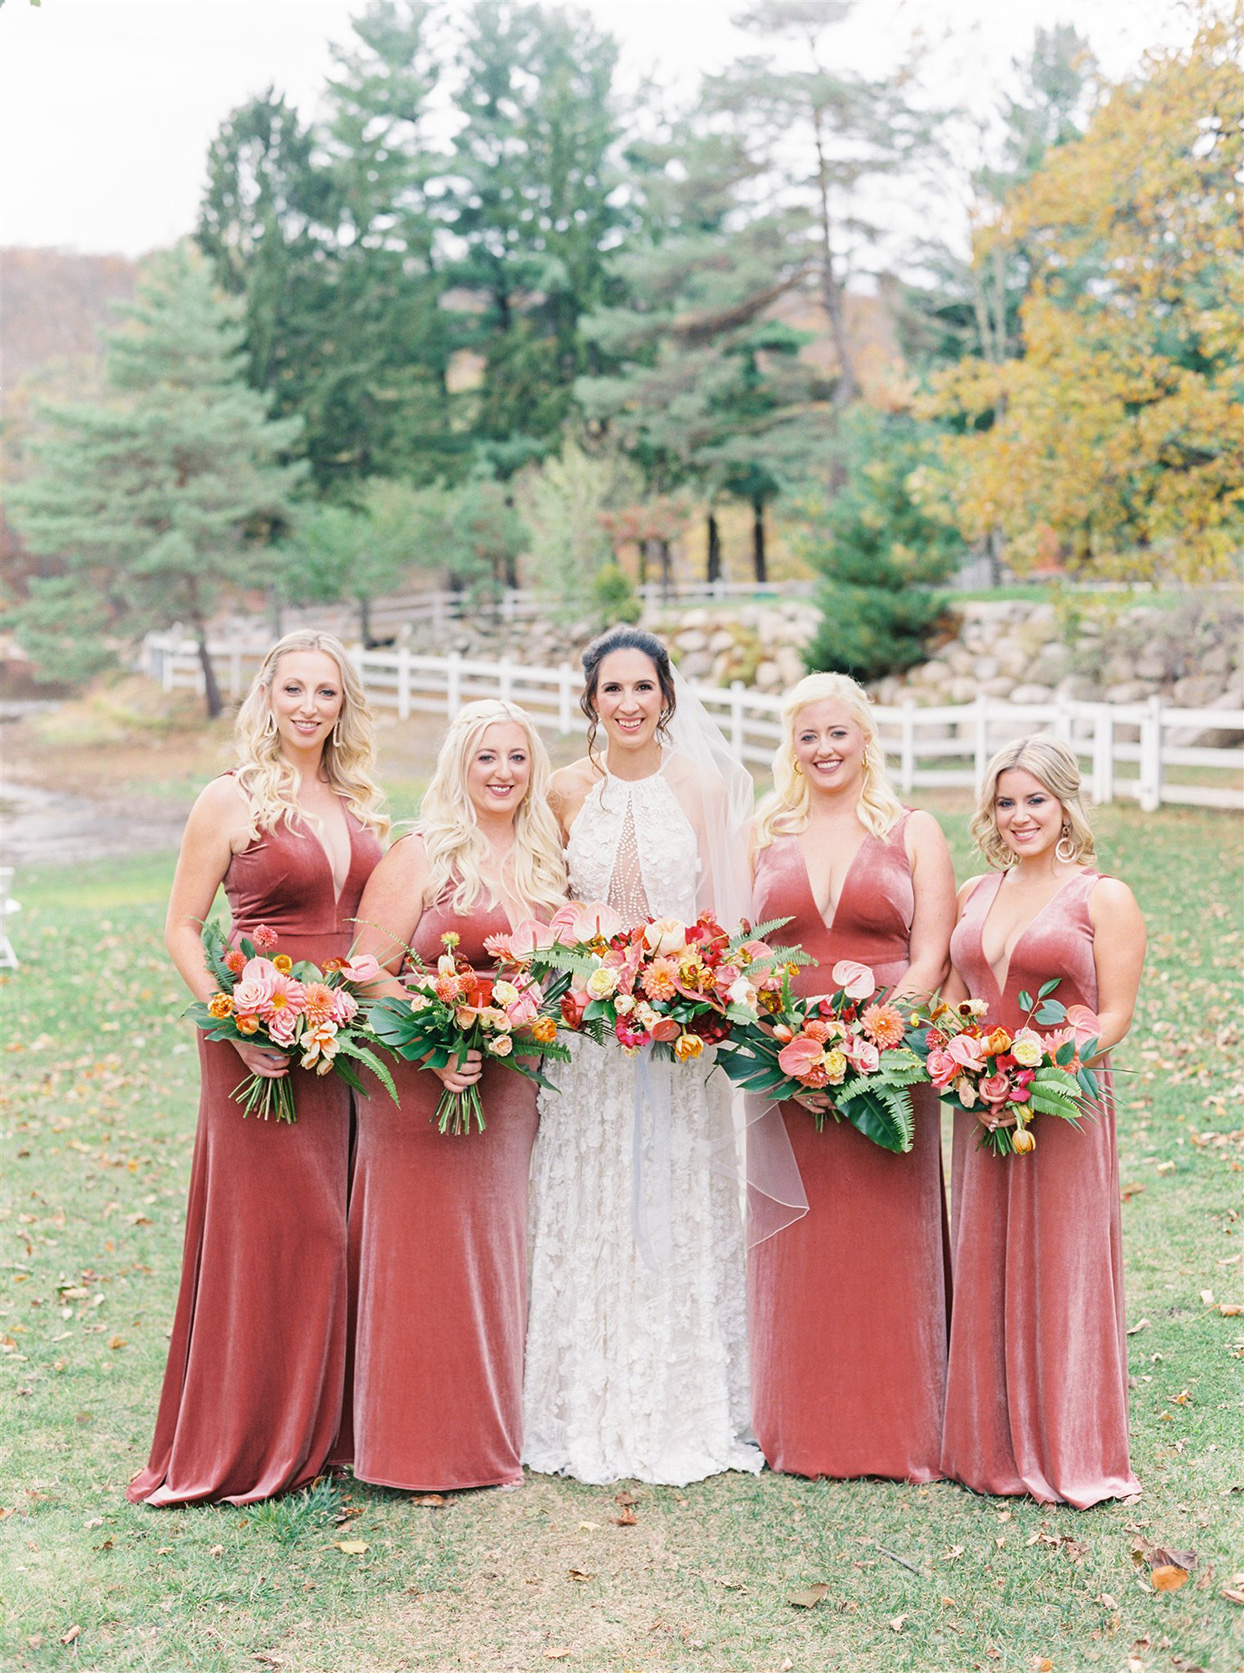 bride and bridesmaids in red dresses